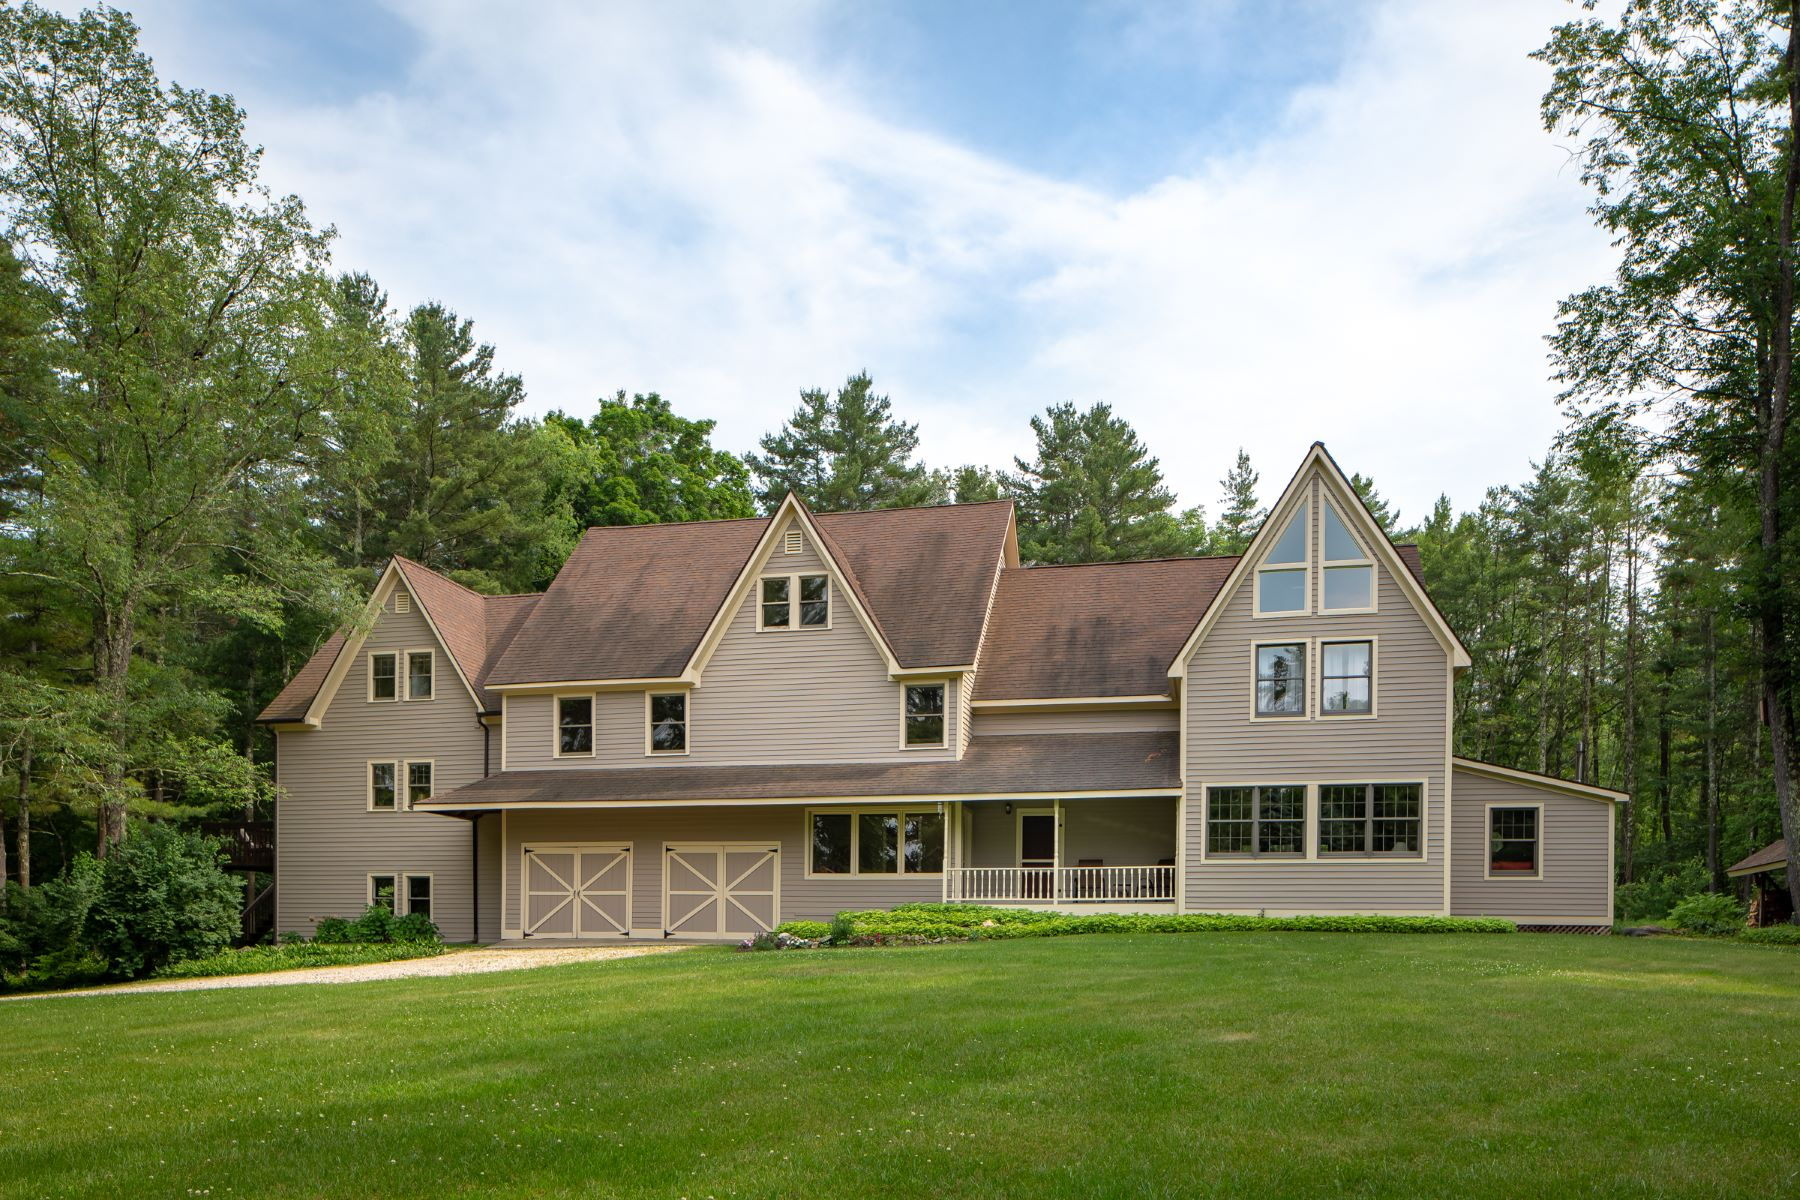 single family homes for Sale at The Gables 32 Amy Road, Falls Village, Connecticut 06031 United States